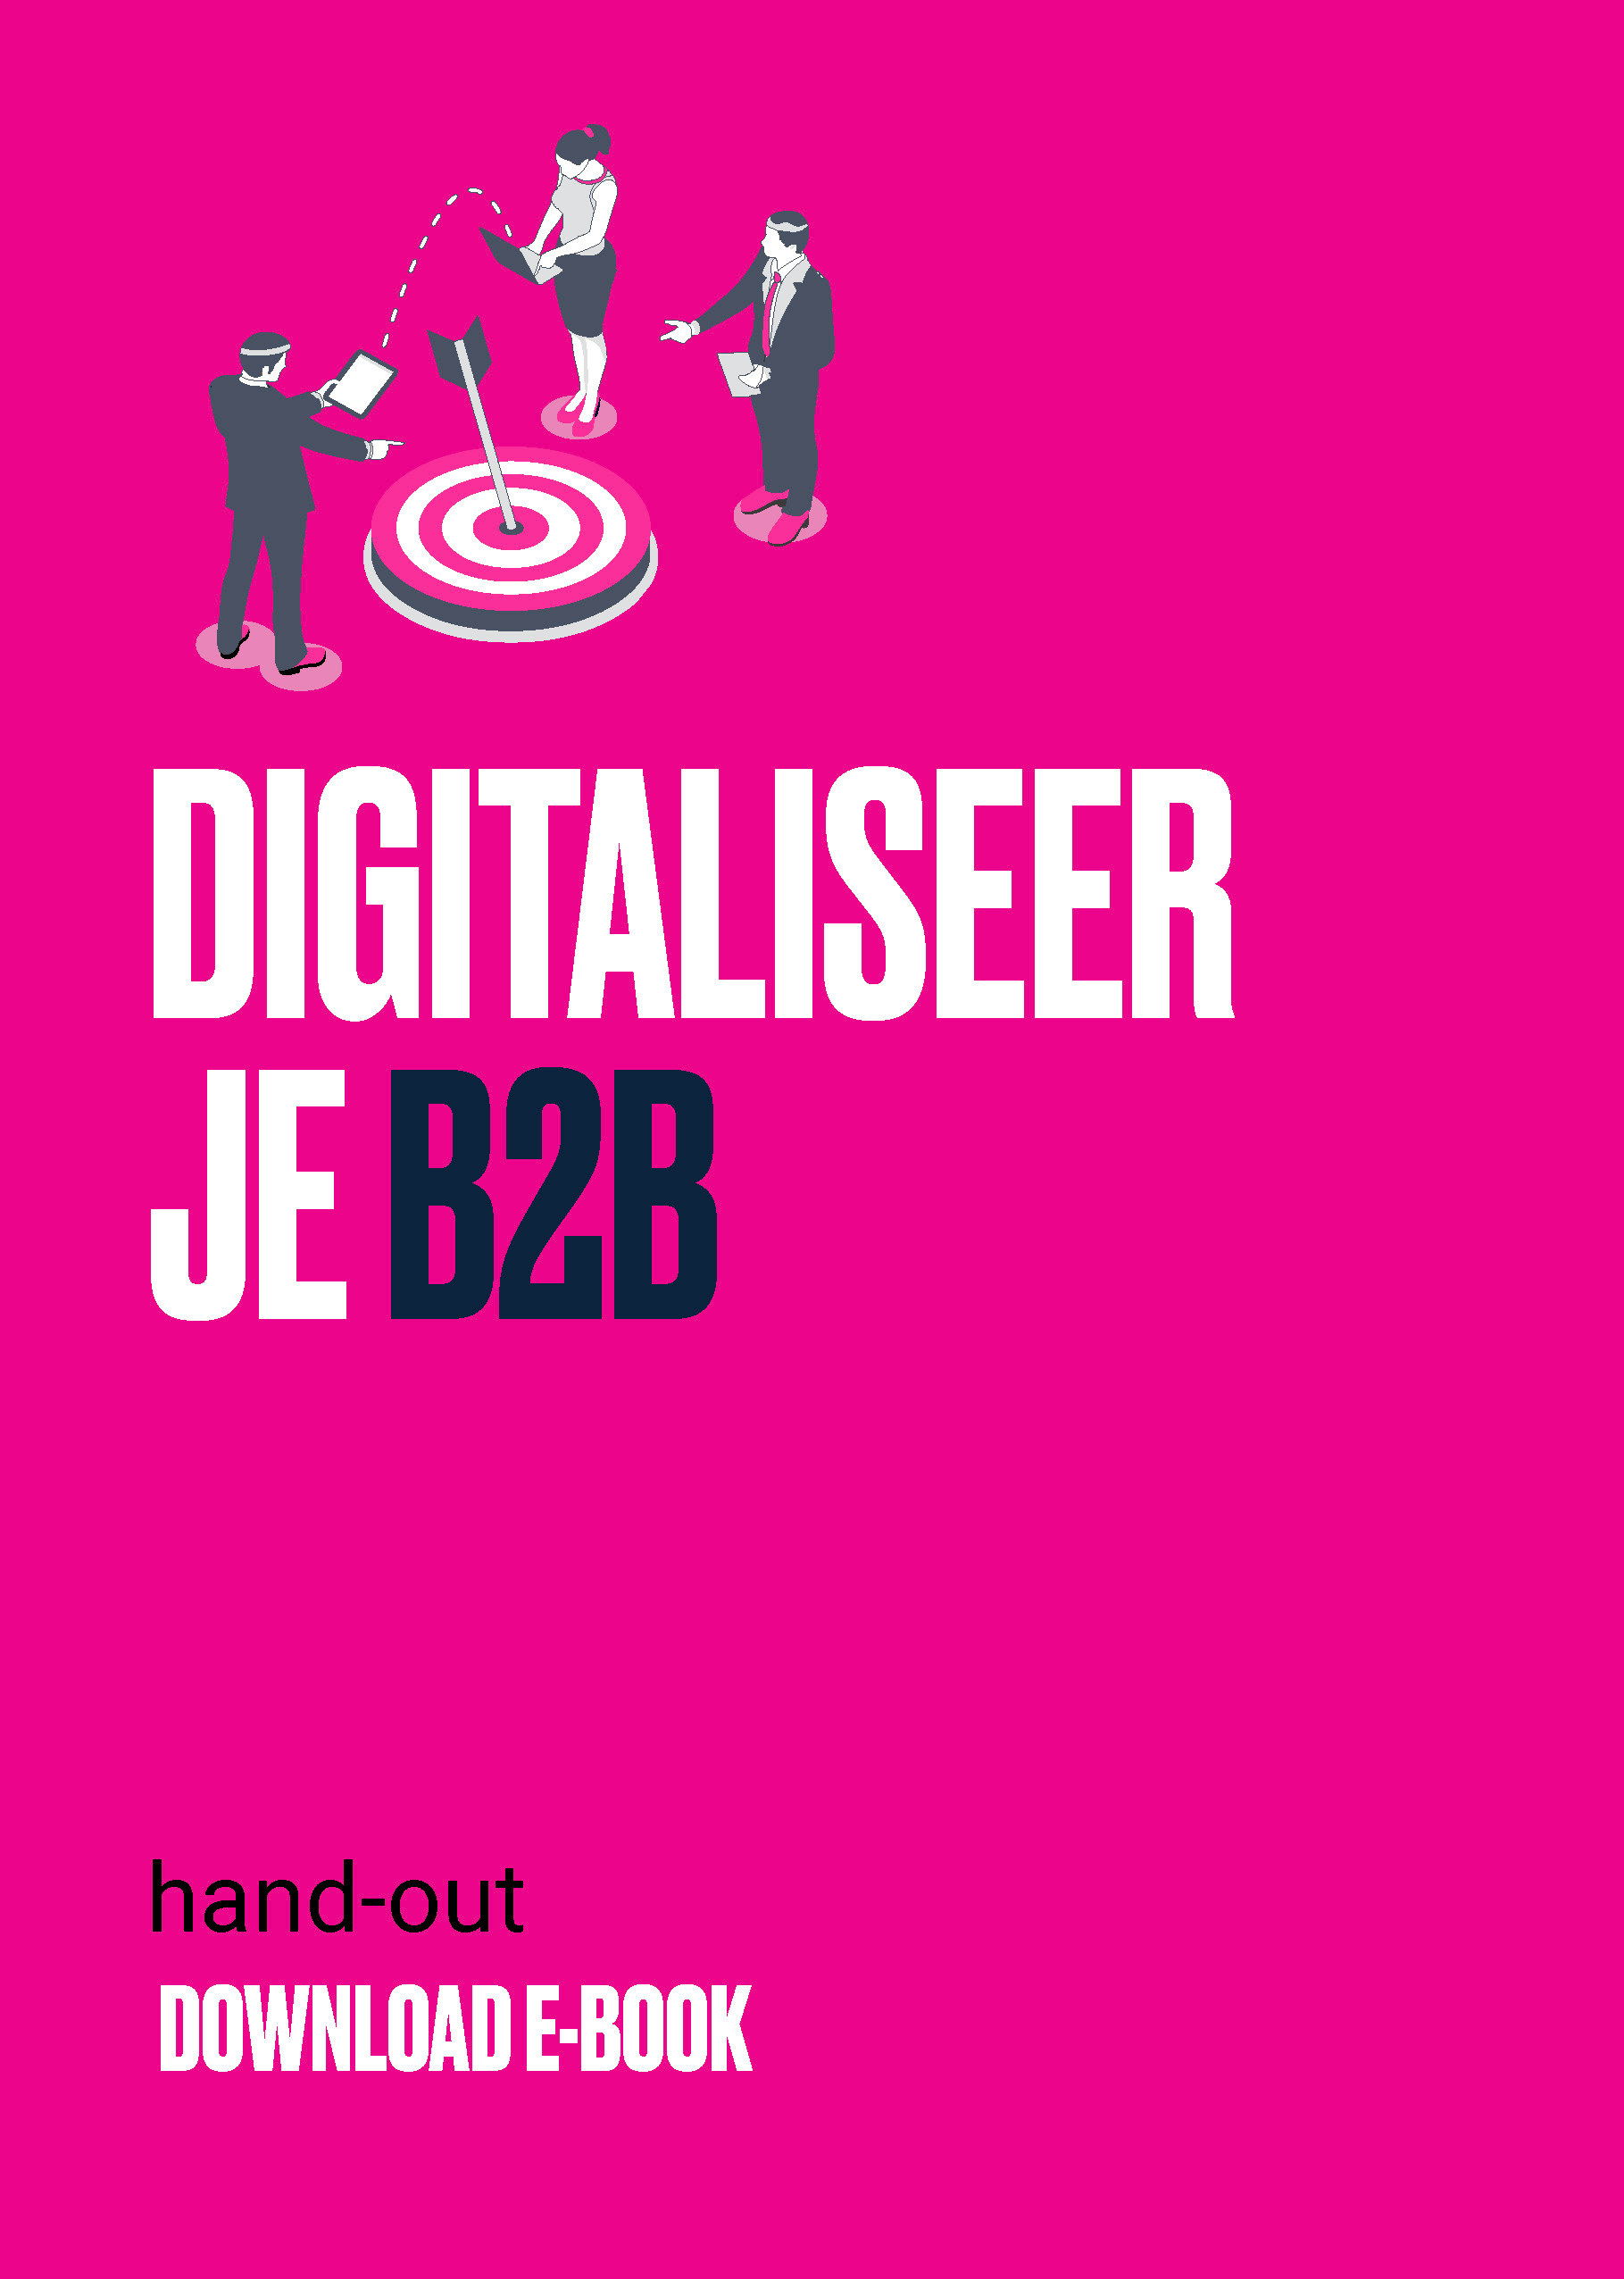 Digitaliseer je B2B